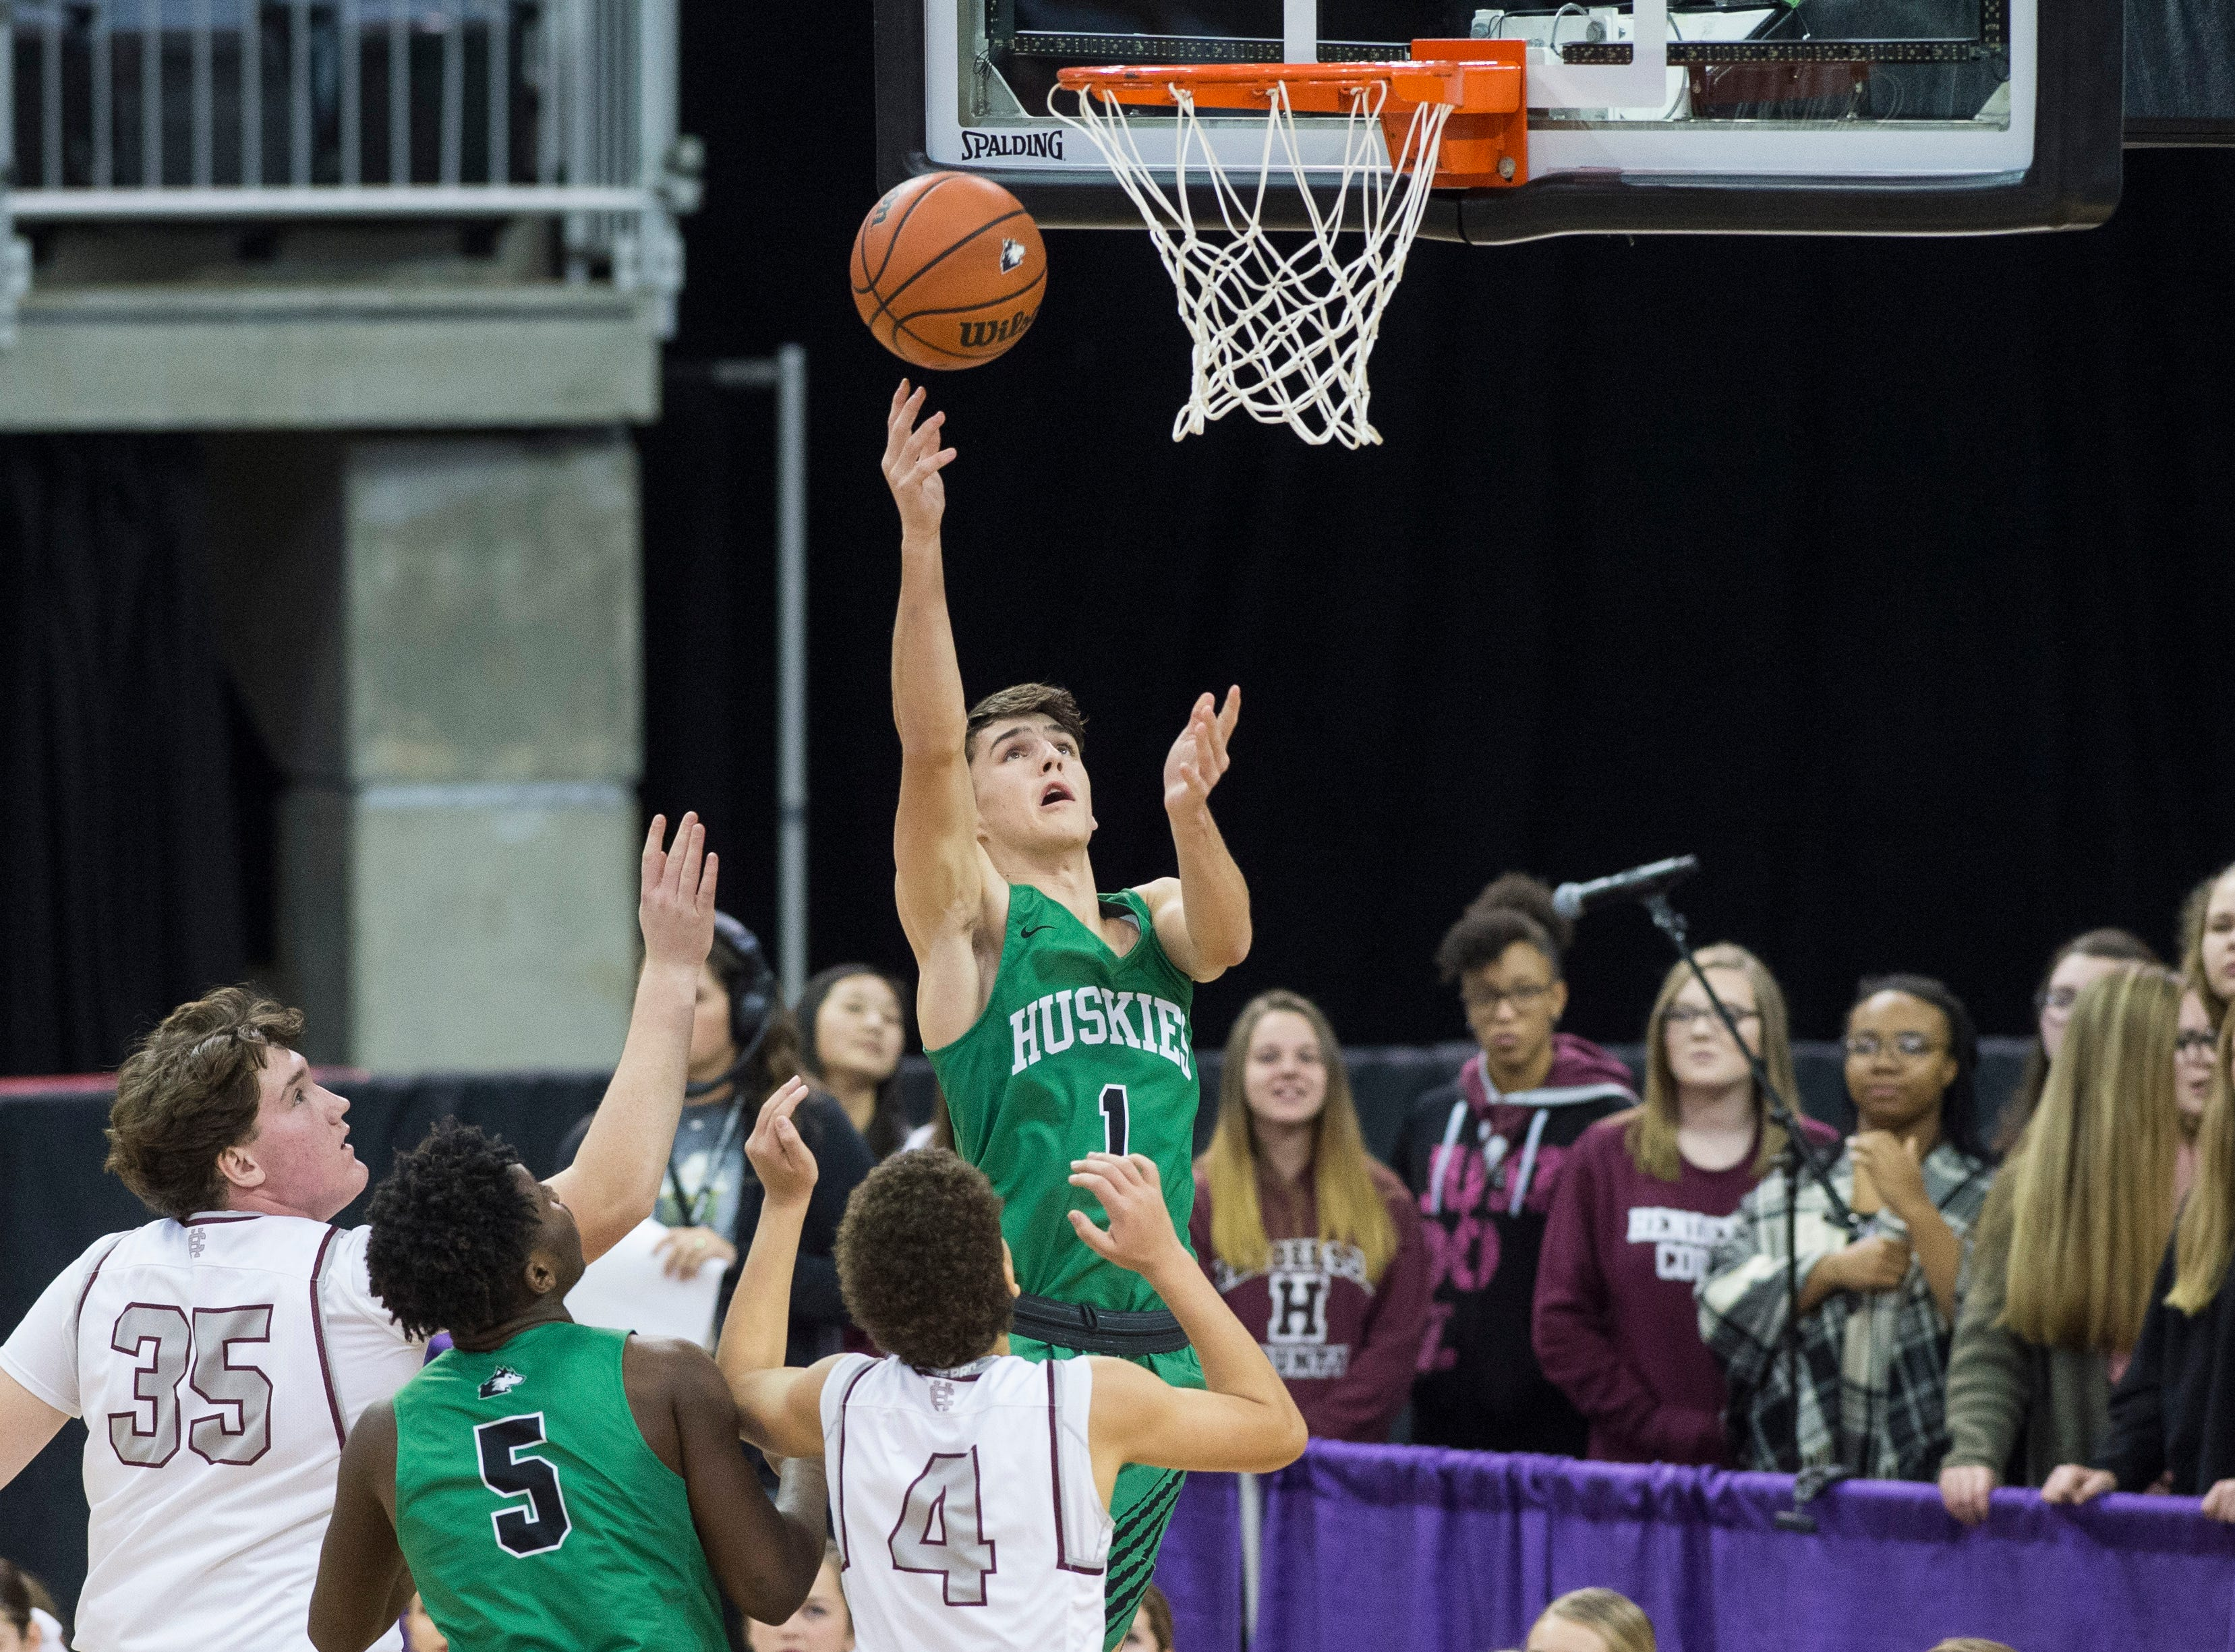 North's Seth Seniour (1) takes a shot during the Henderson County vs Evansville North basketball game in the River City Showcase at the Ford Center Friday, Dec. 7, 2018.